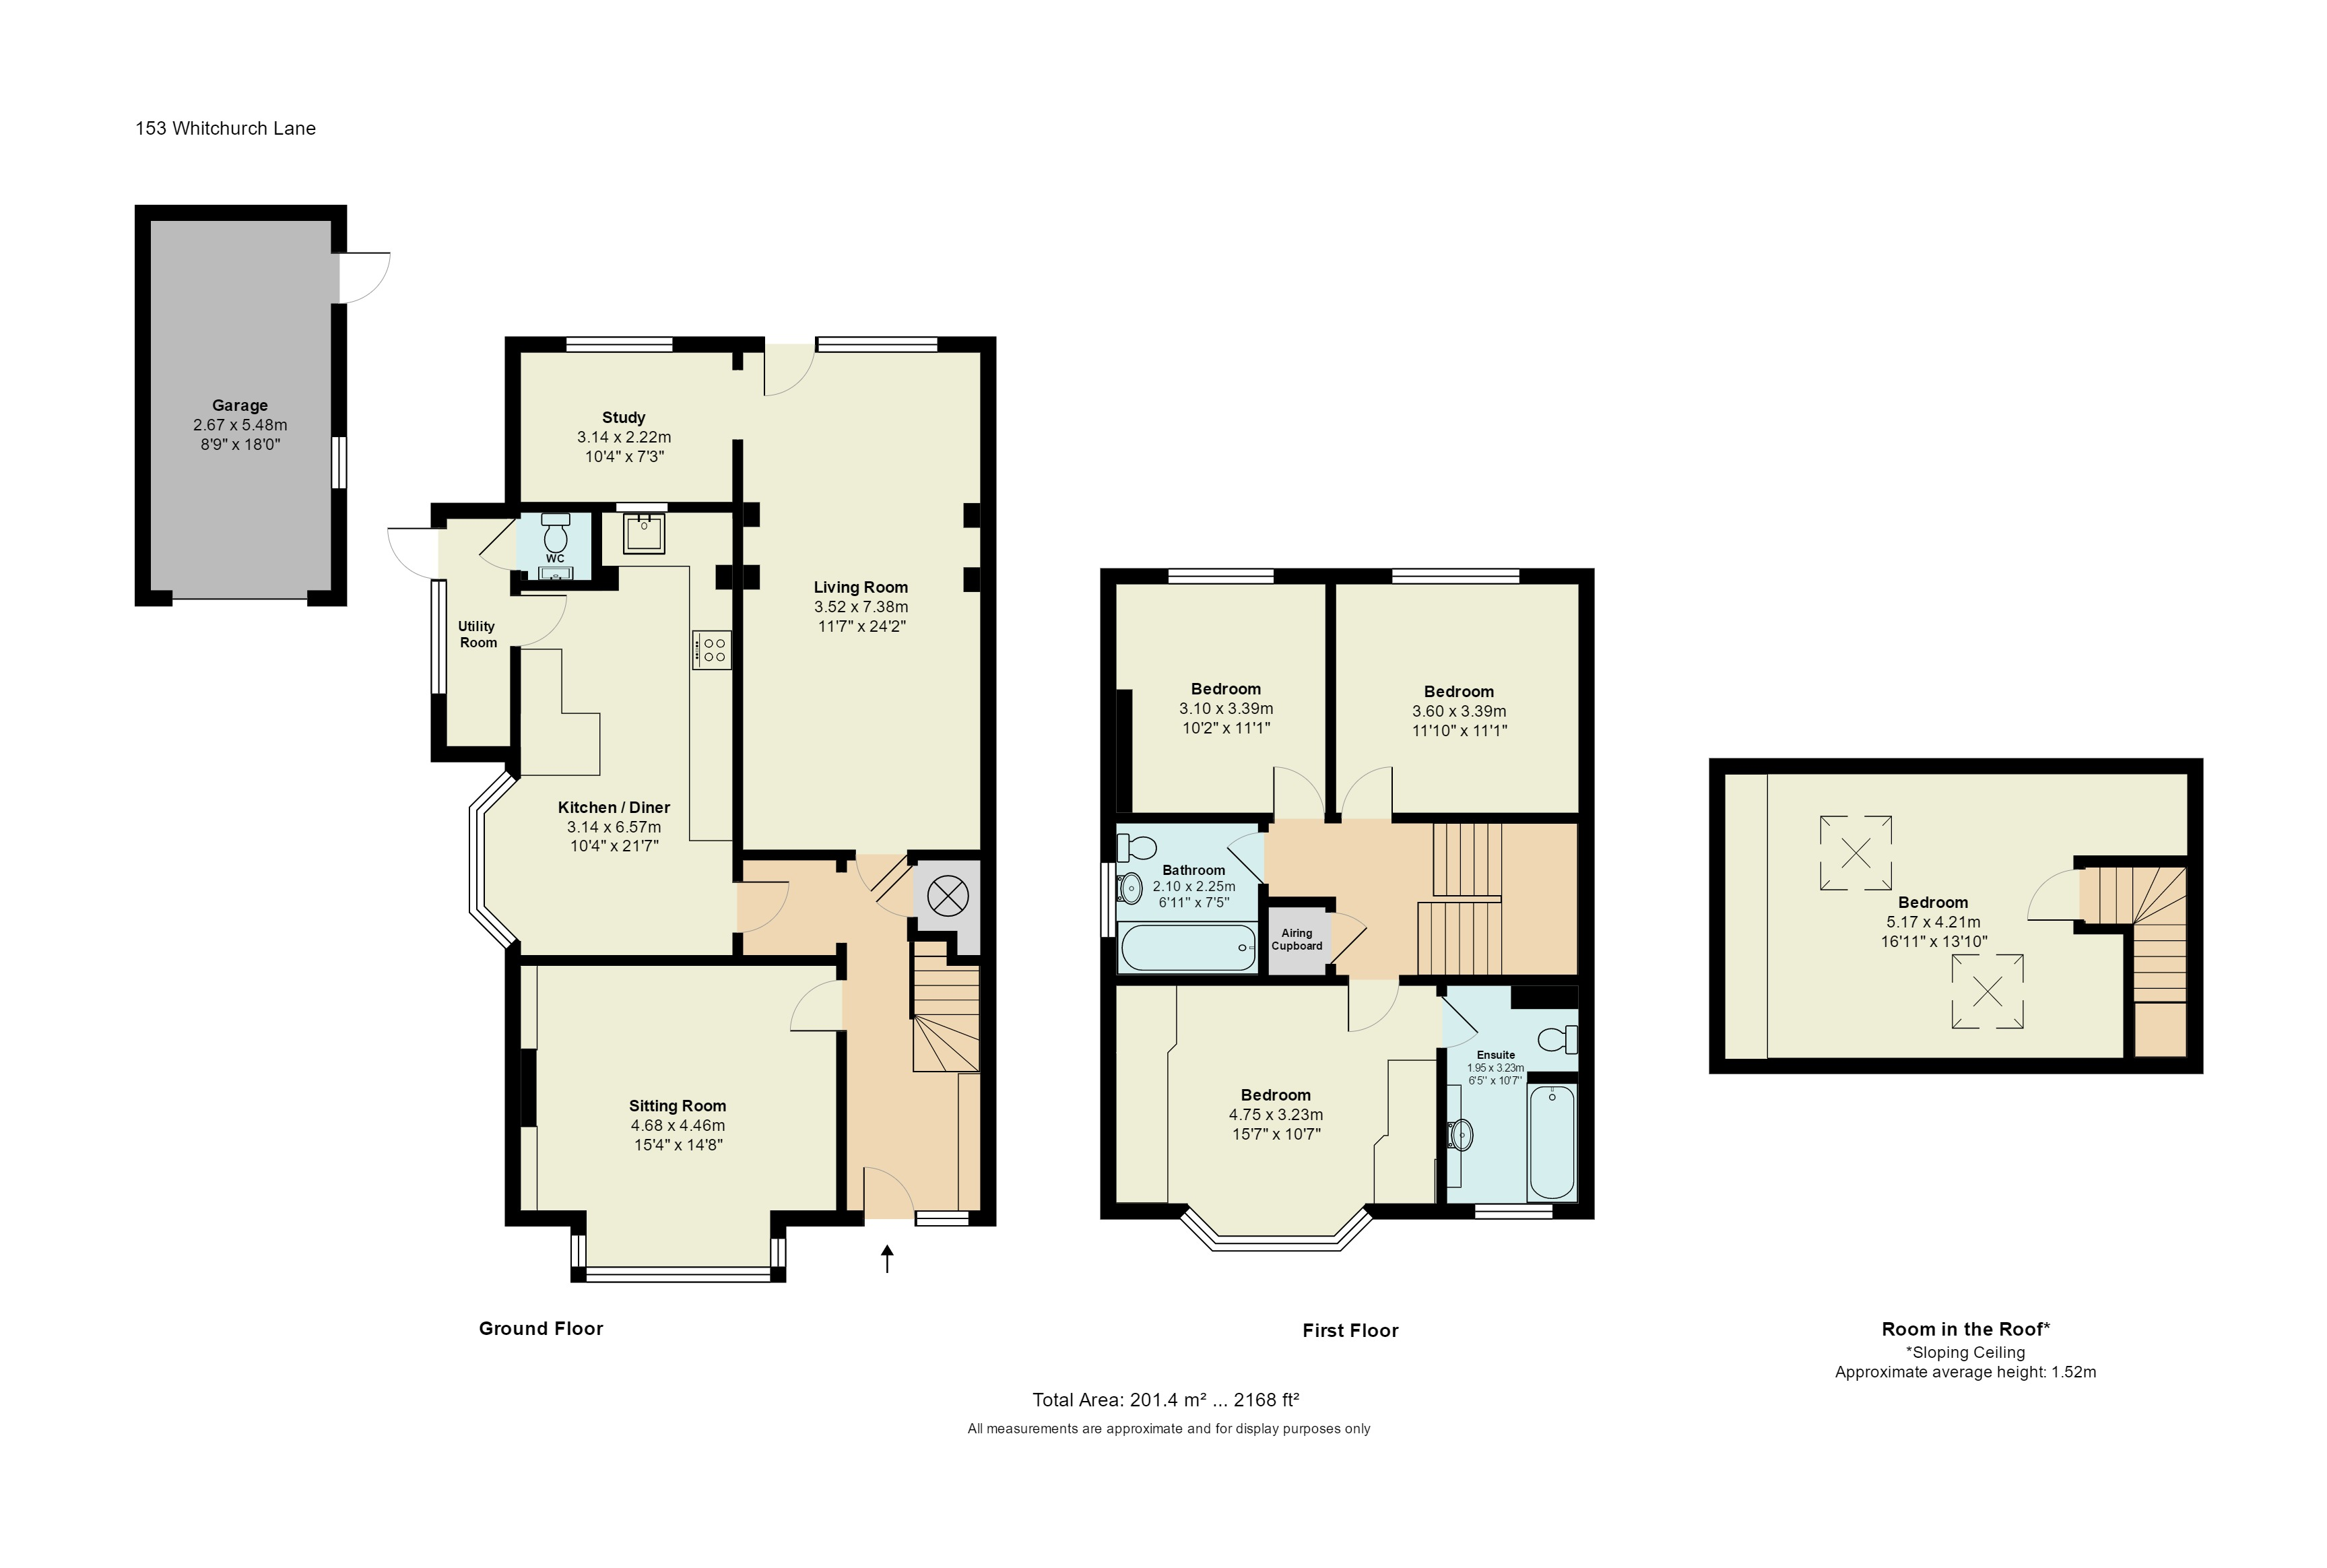 4 bedroom property for sale in whitchurch lane guide for How much is a bedroom worth in an appraisal